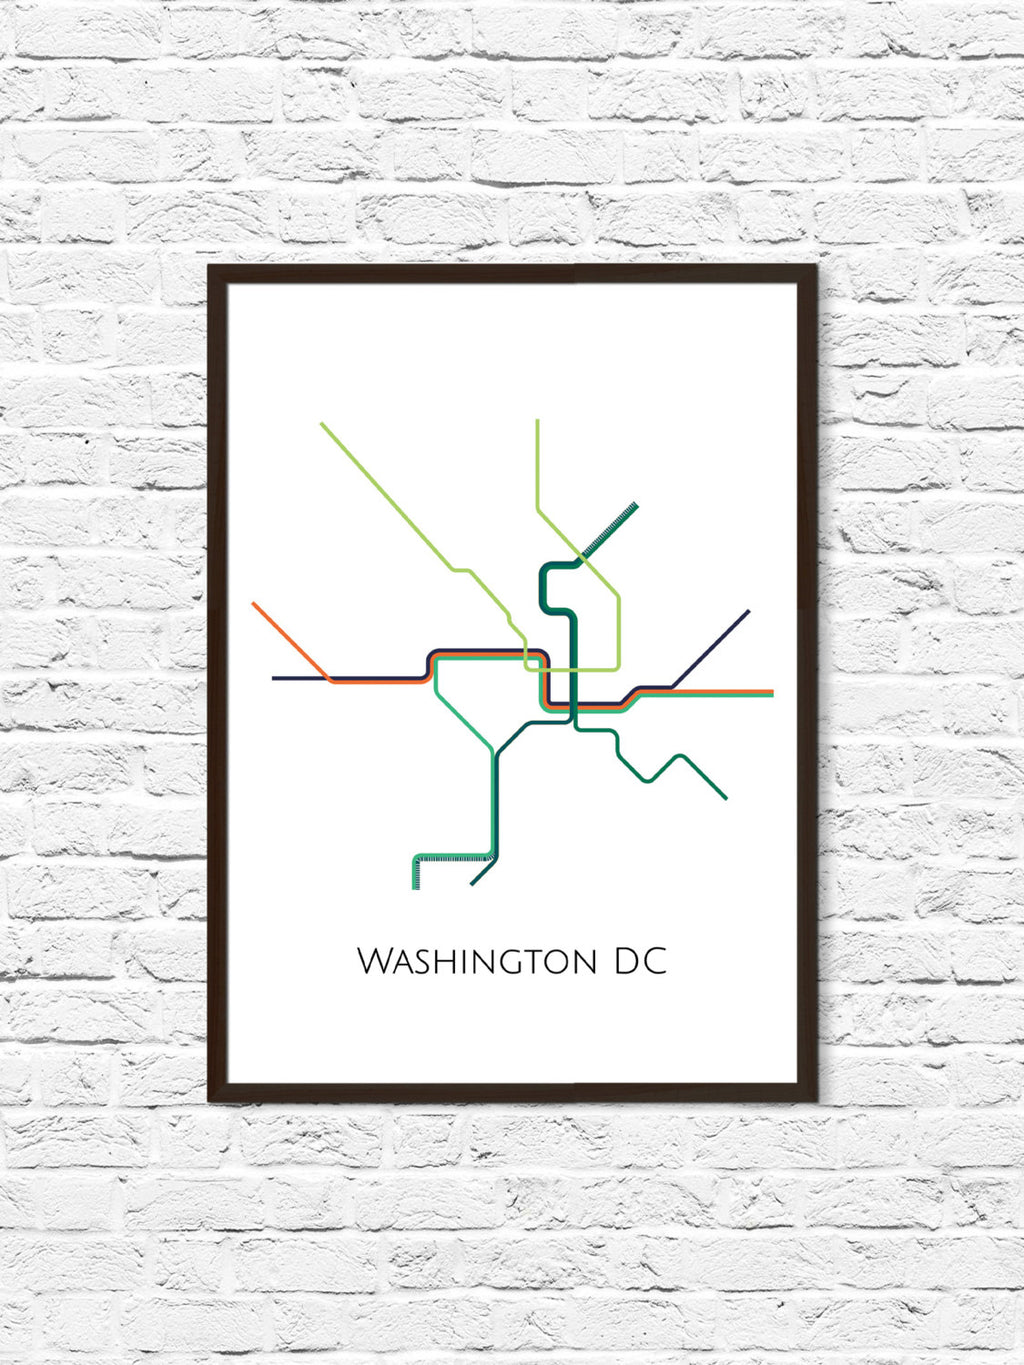 Washington DC Subway Map - ParMar Media - 1